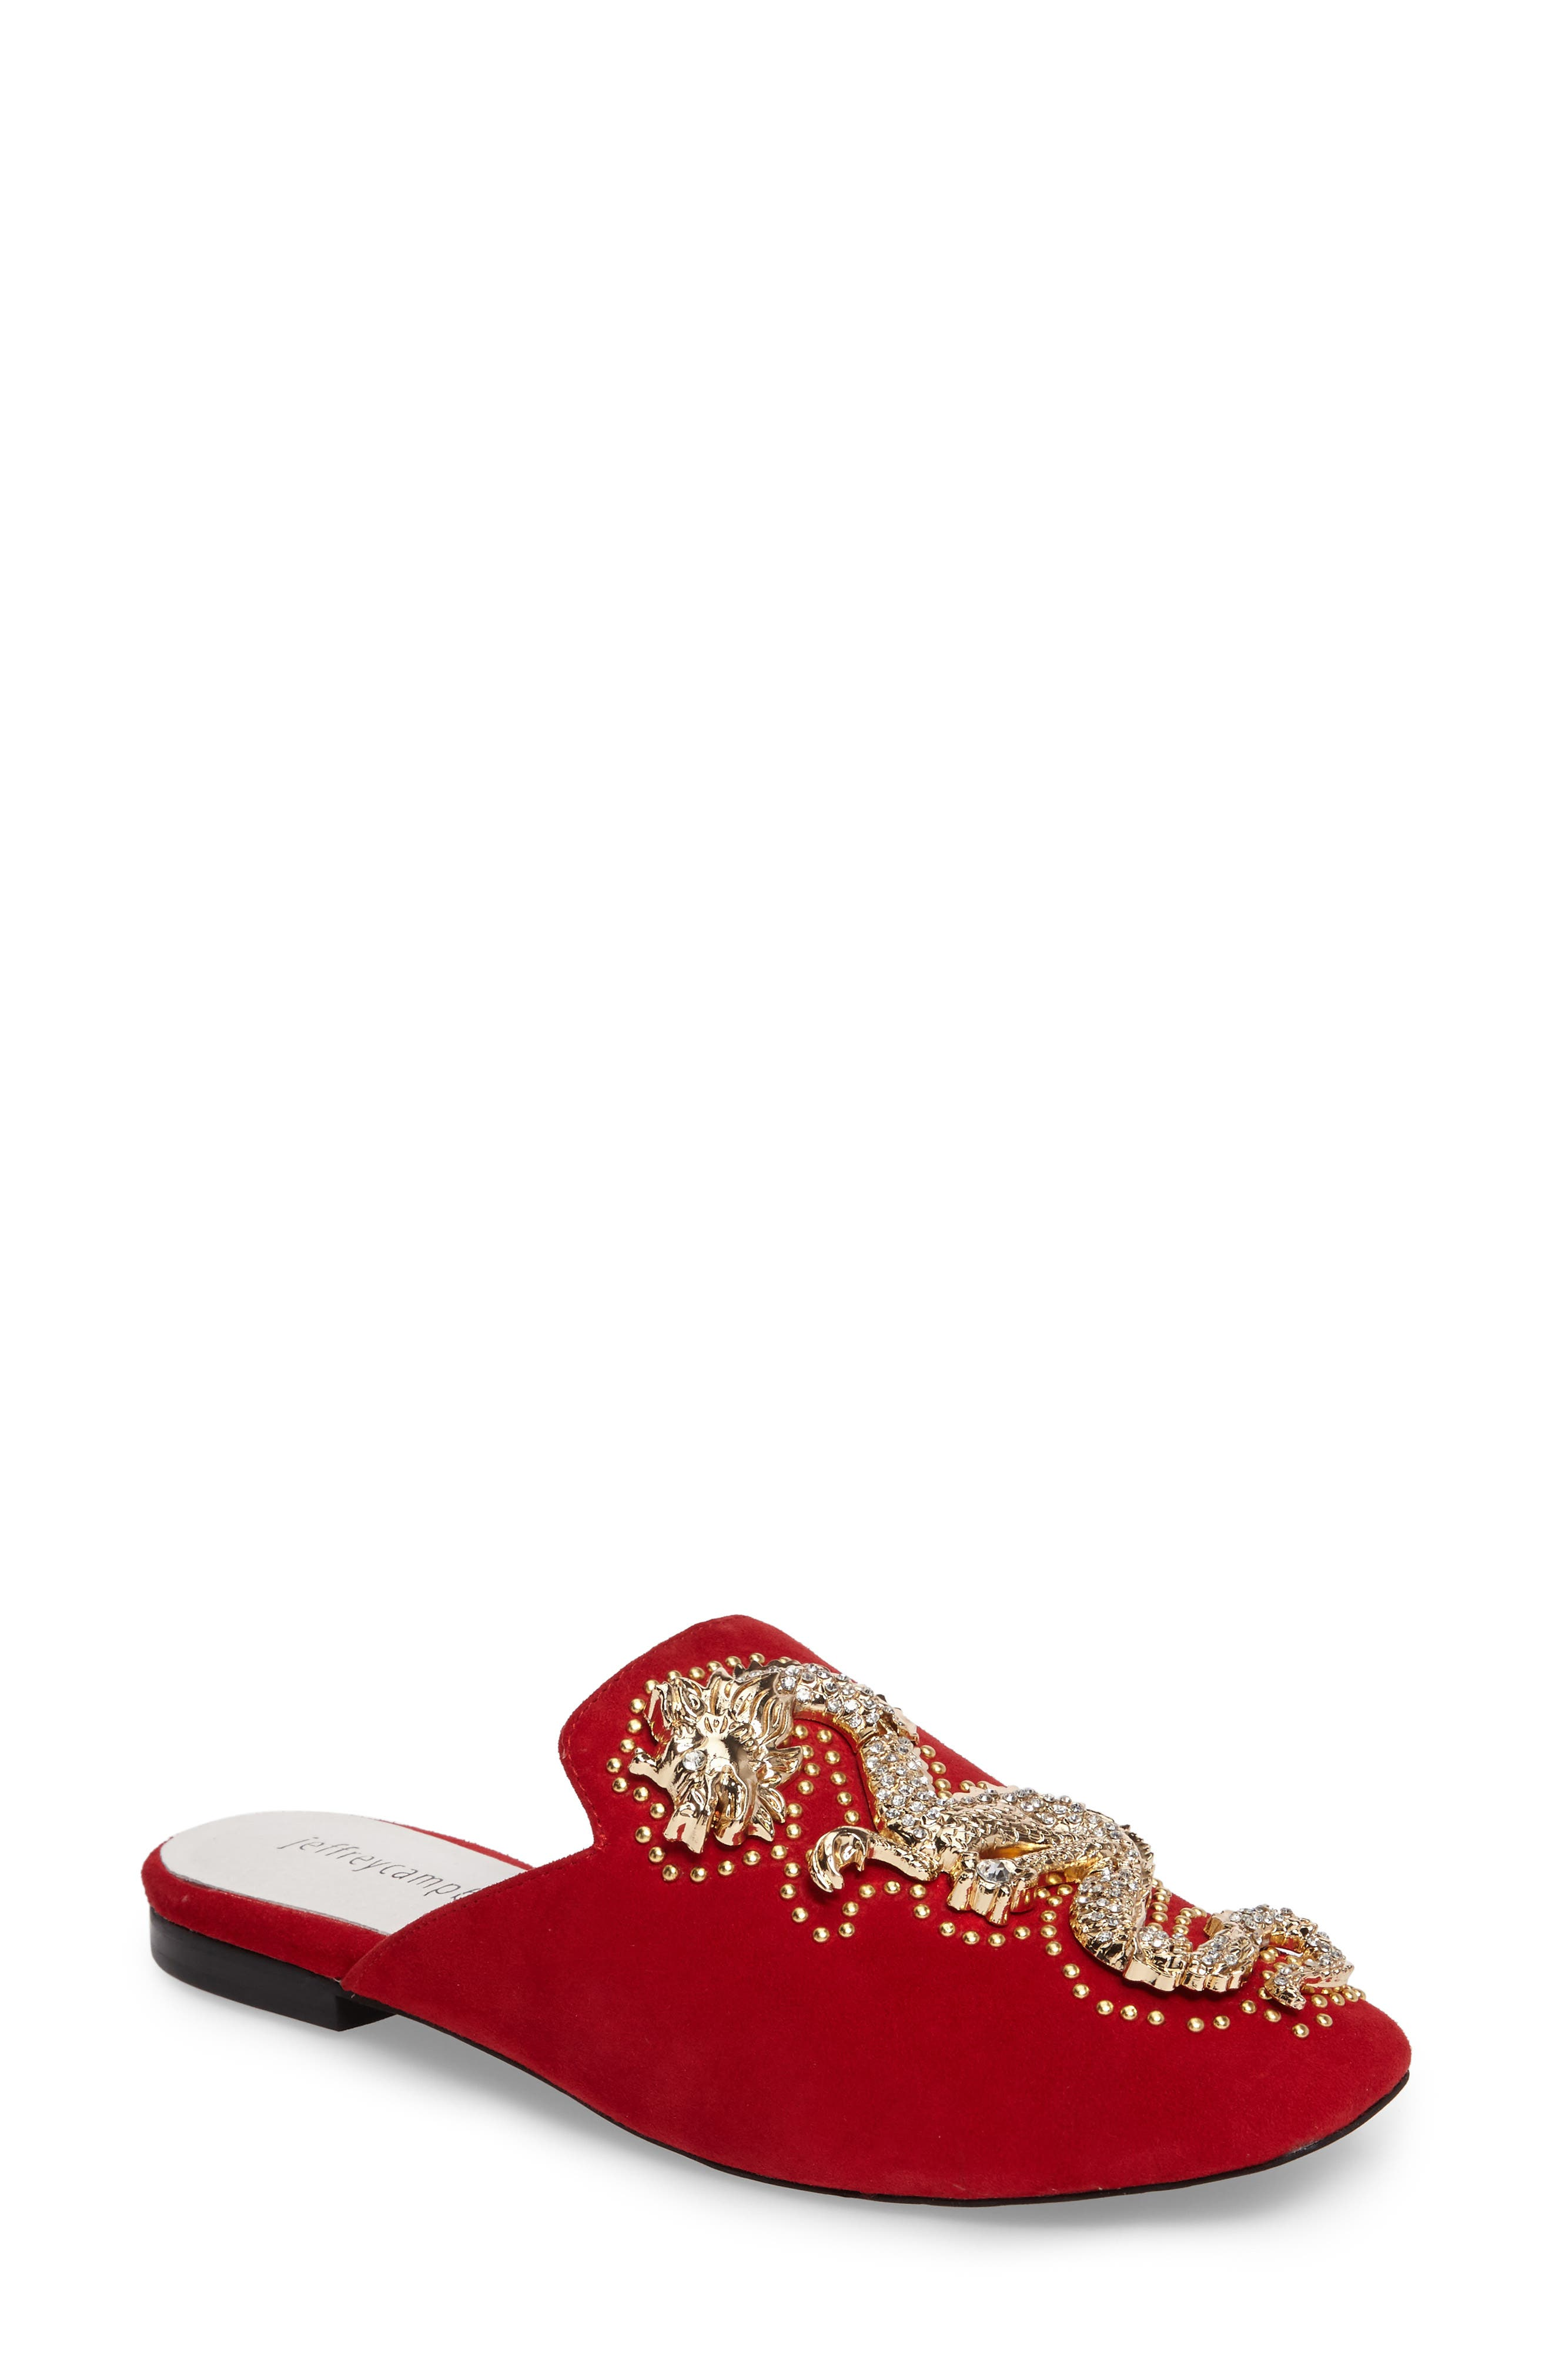 Ravis-Drag Loafer Mule,                             Main thumbnail 1, color,                             600